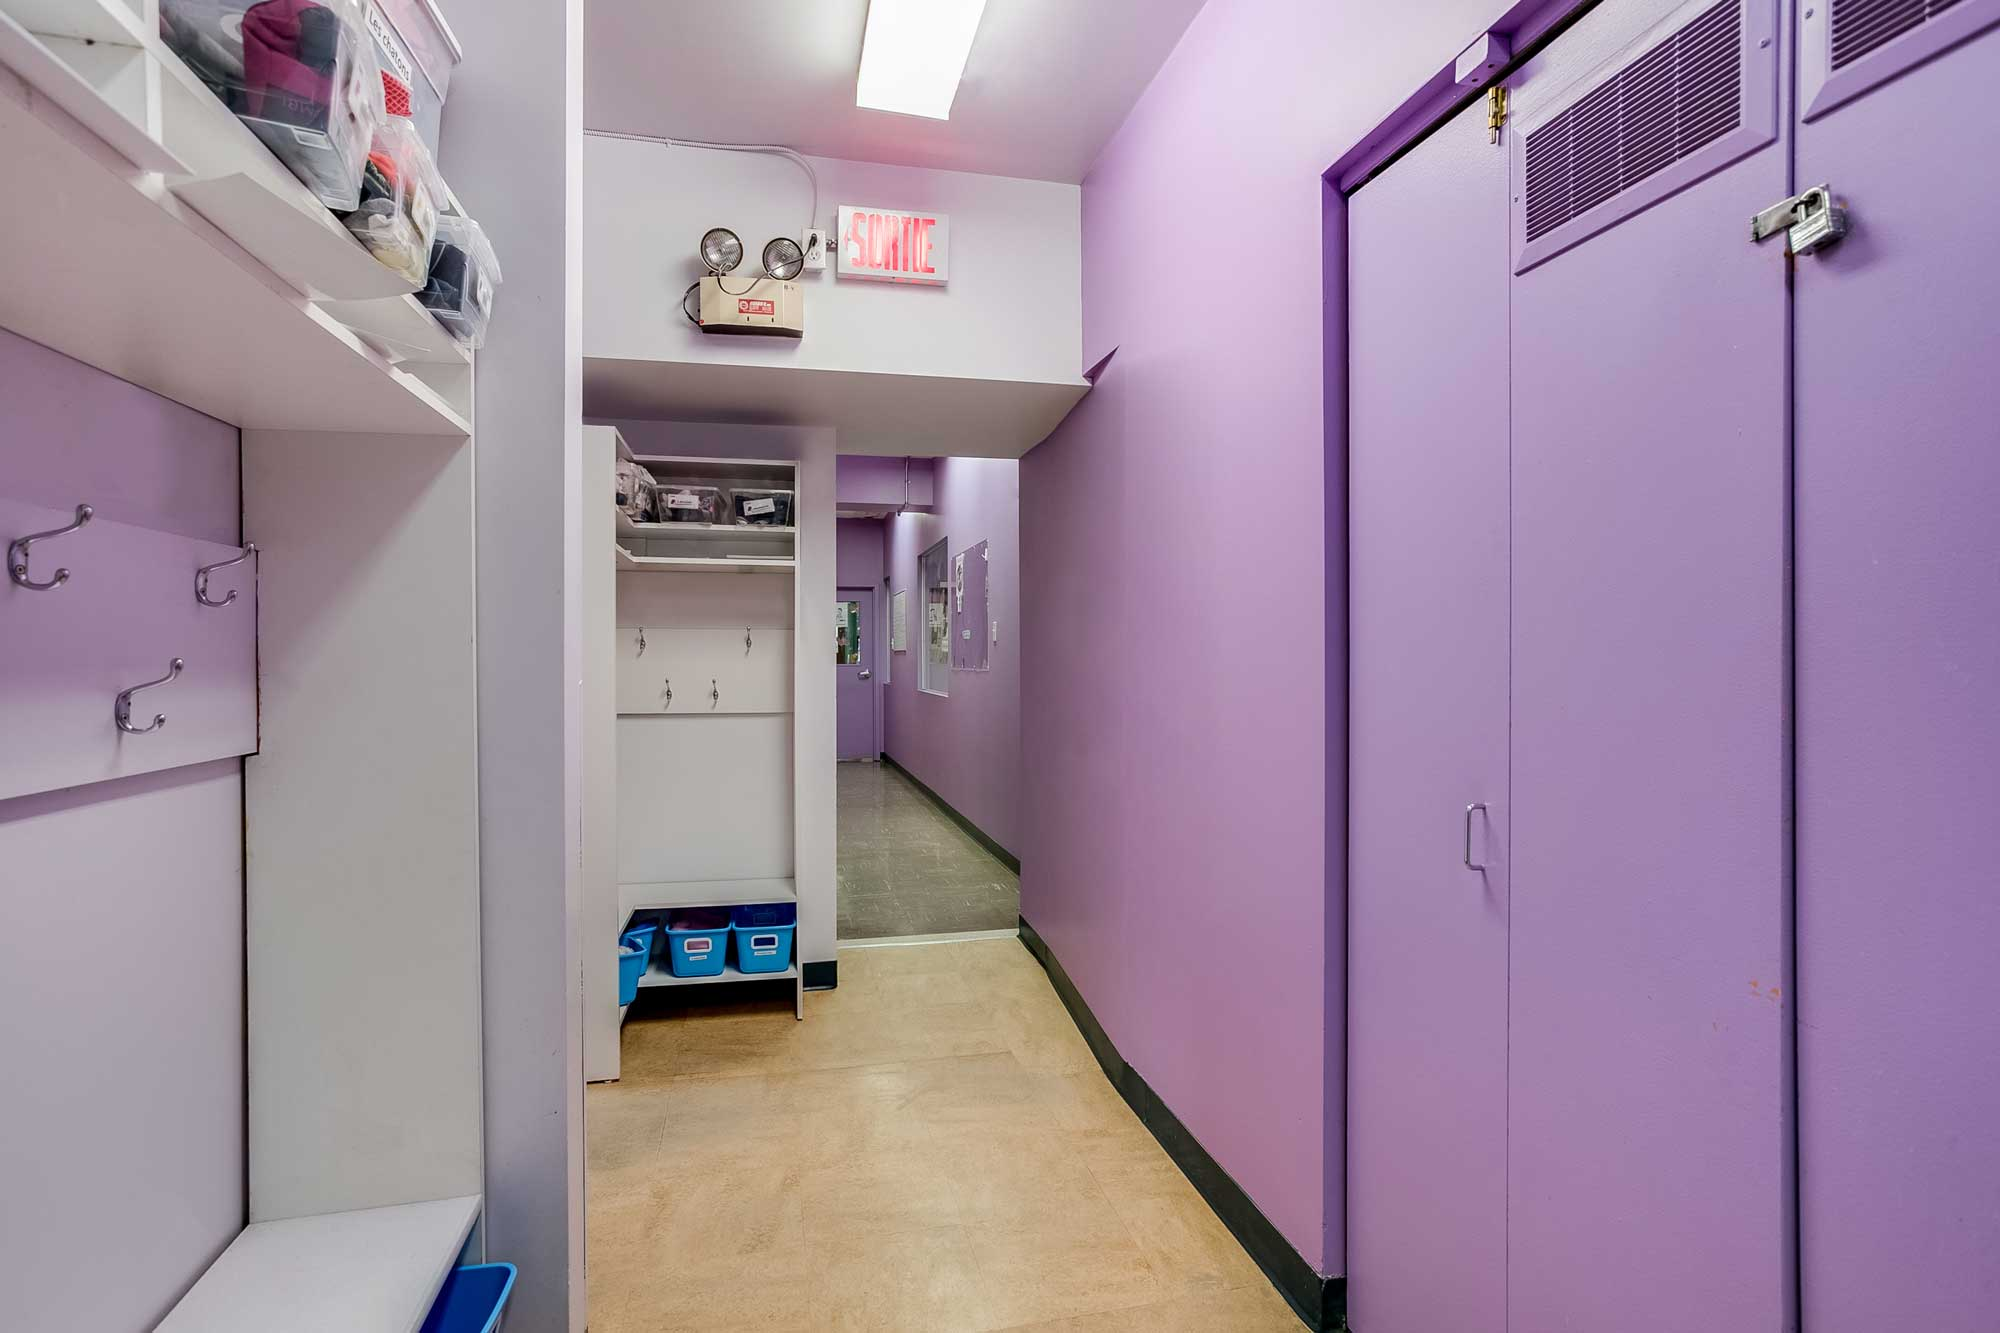 mudroom cubbies in a daycare